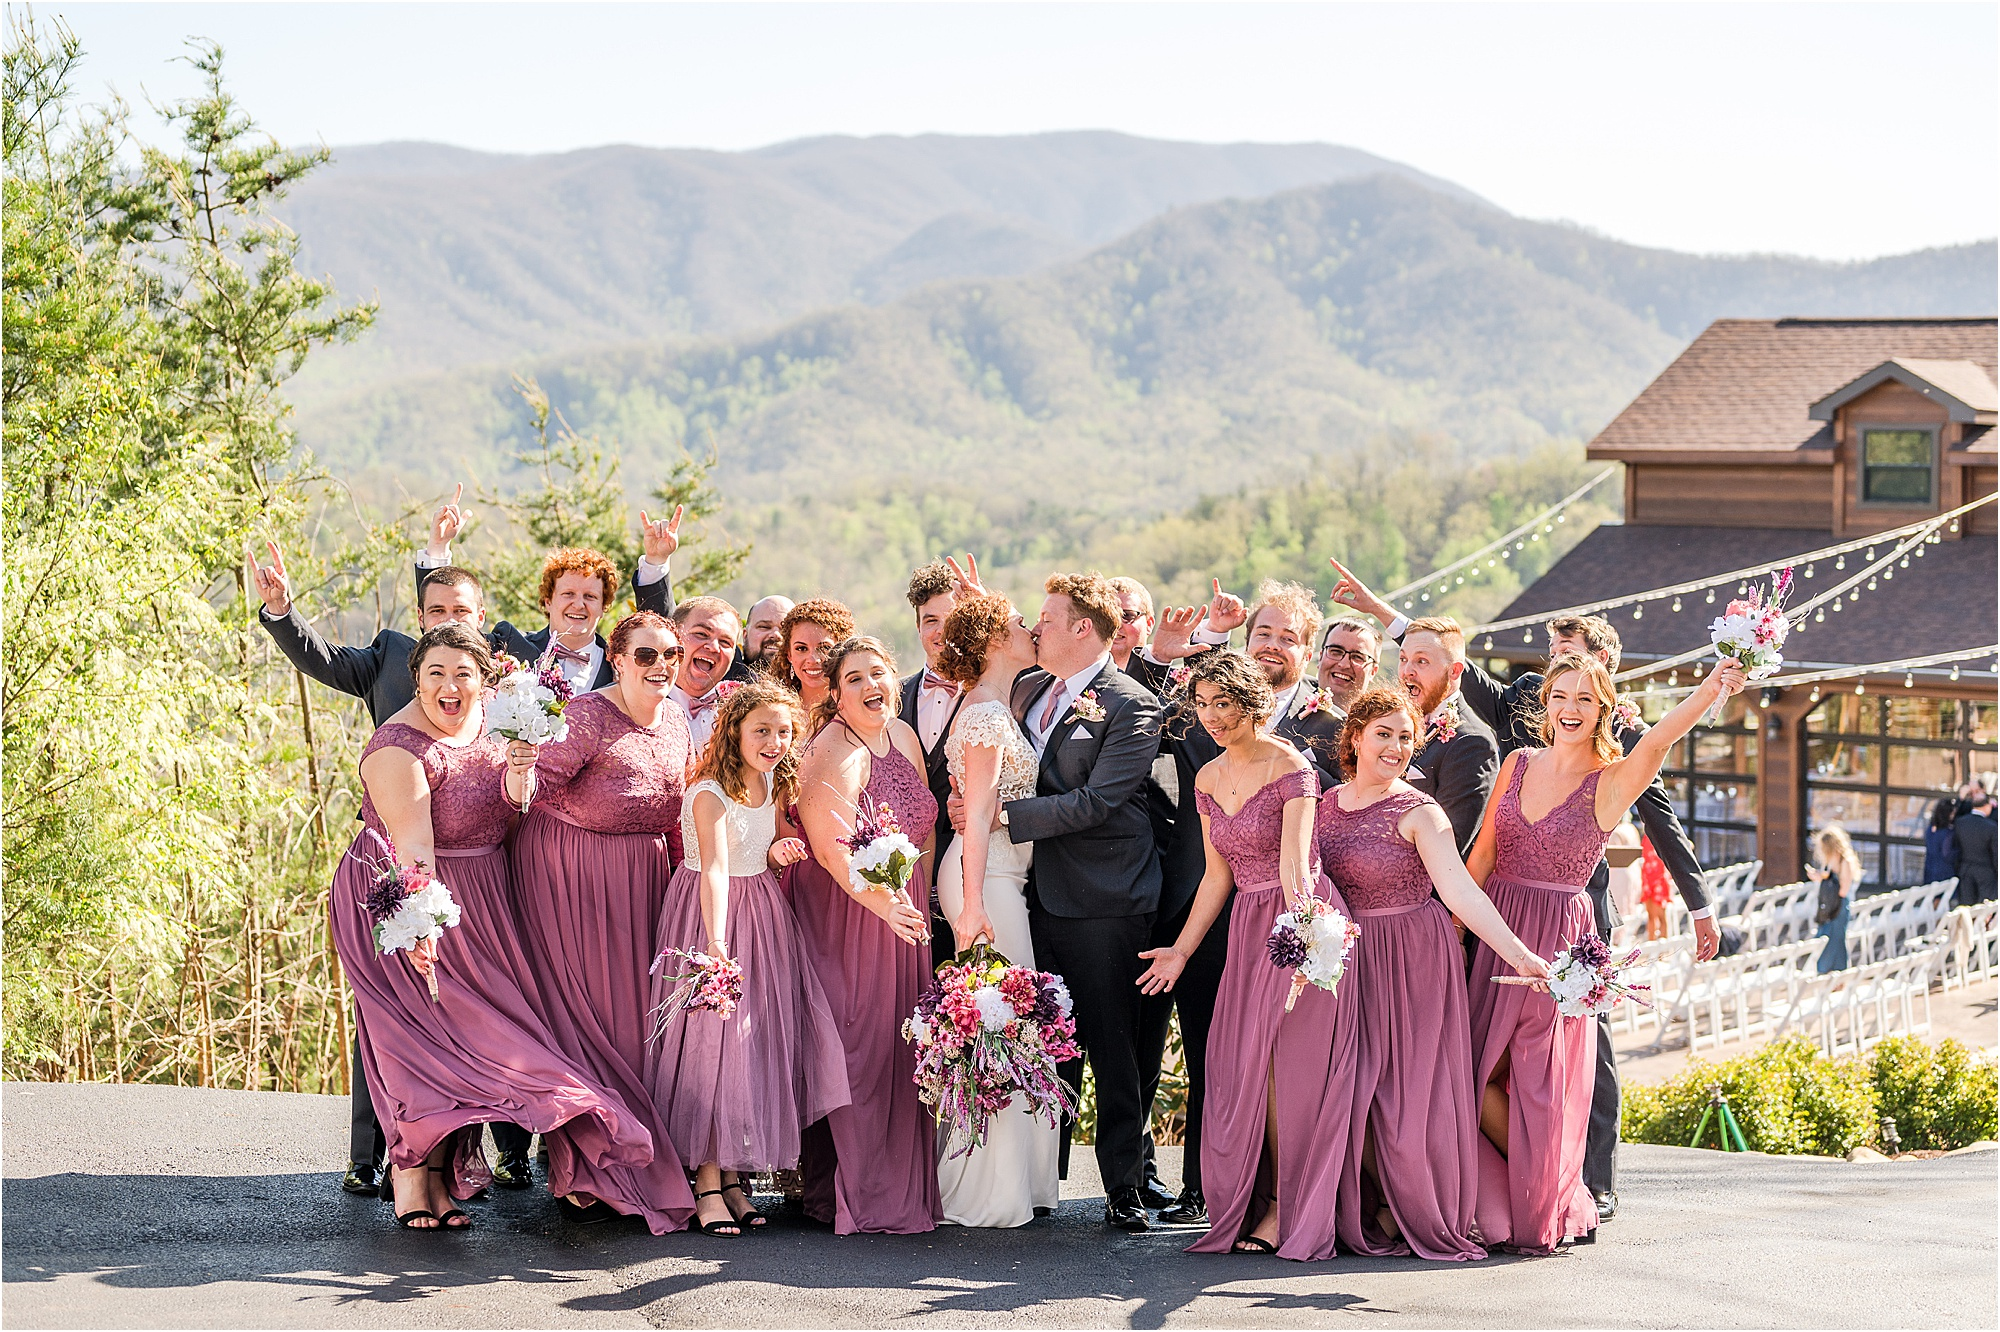 Fun, Vibrant, Eclectic Wedding in the Mountains